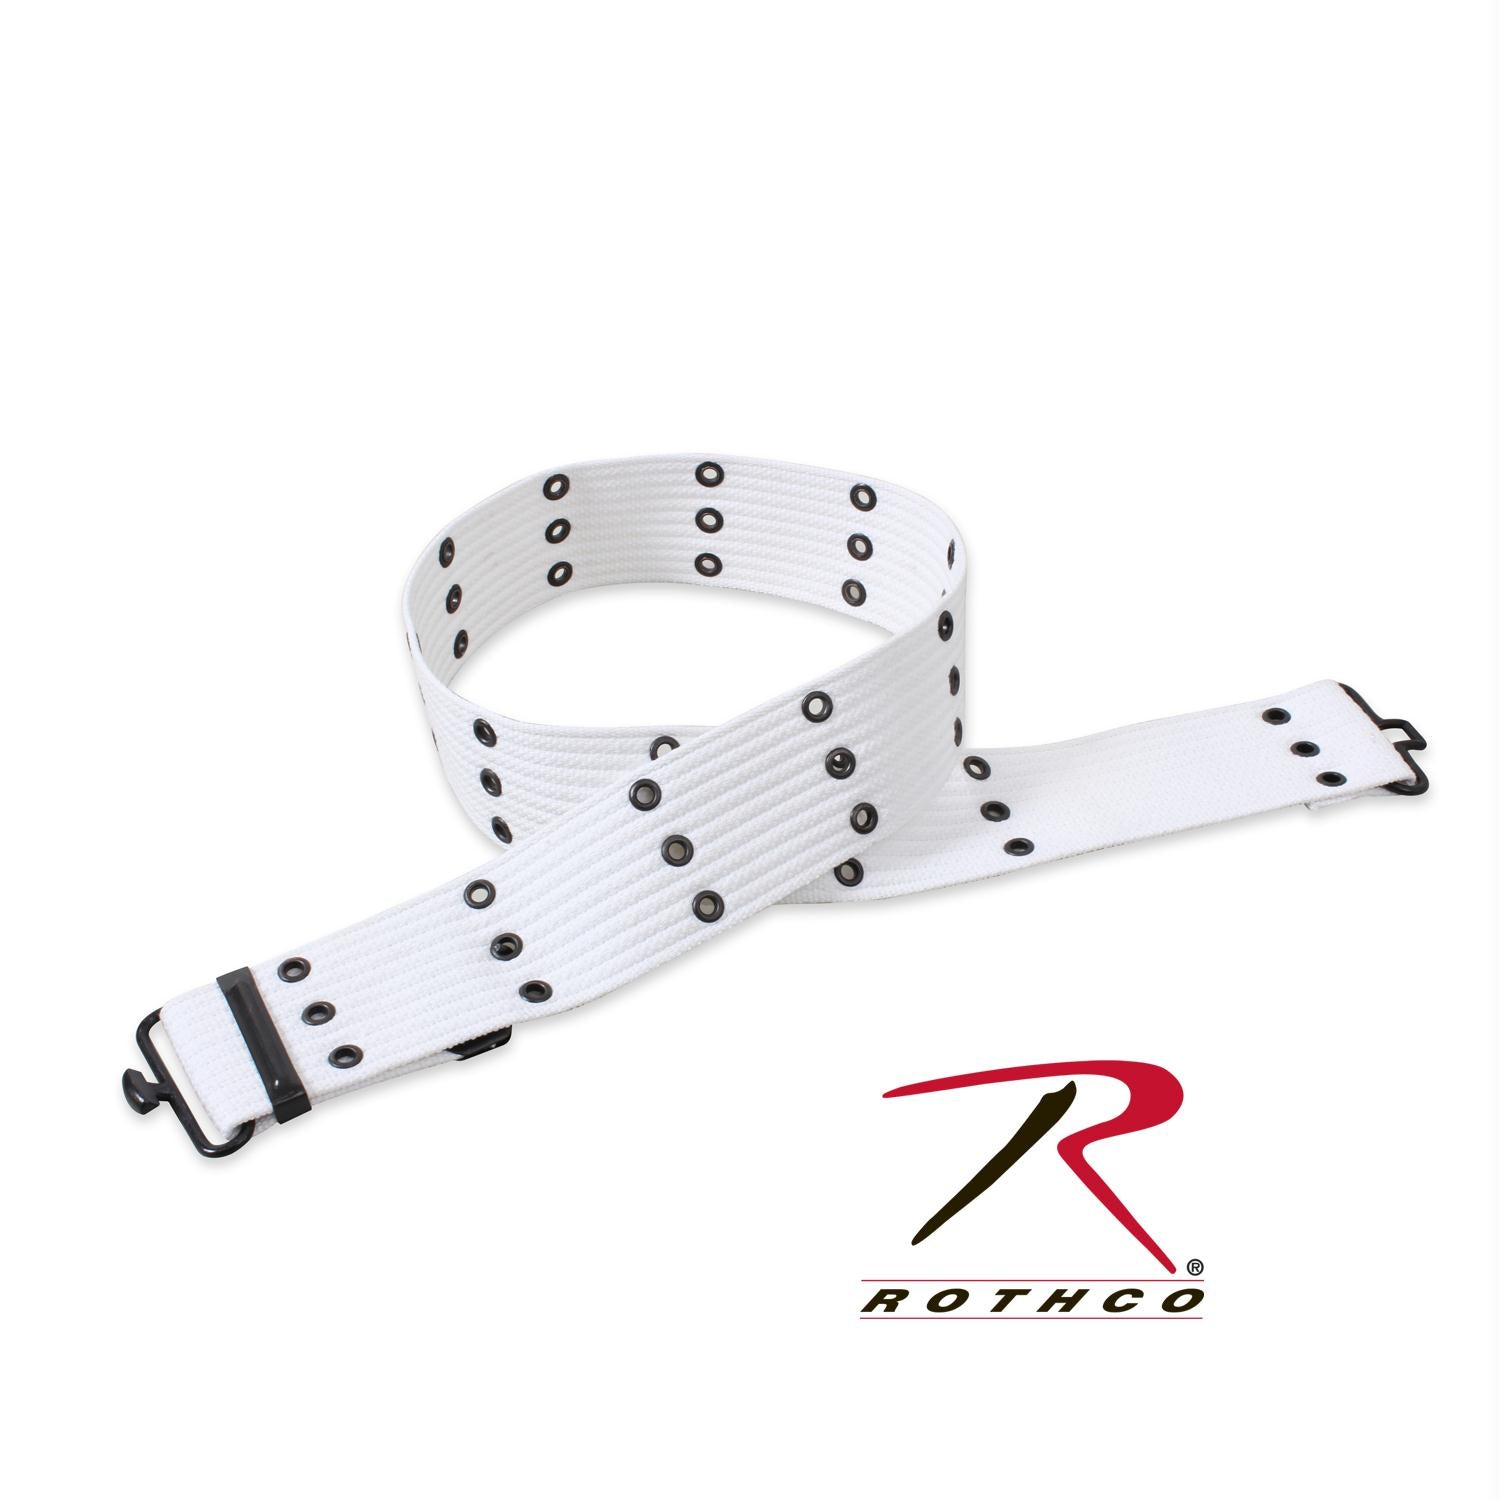 Rothco Military Style Pistol Belts - White